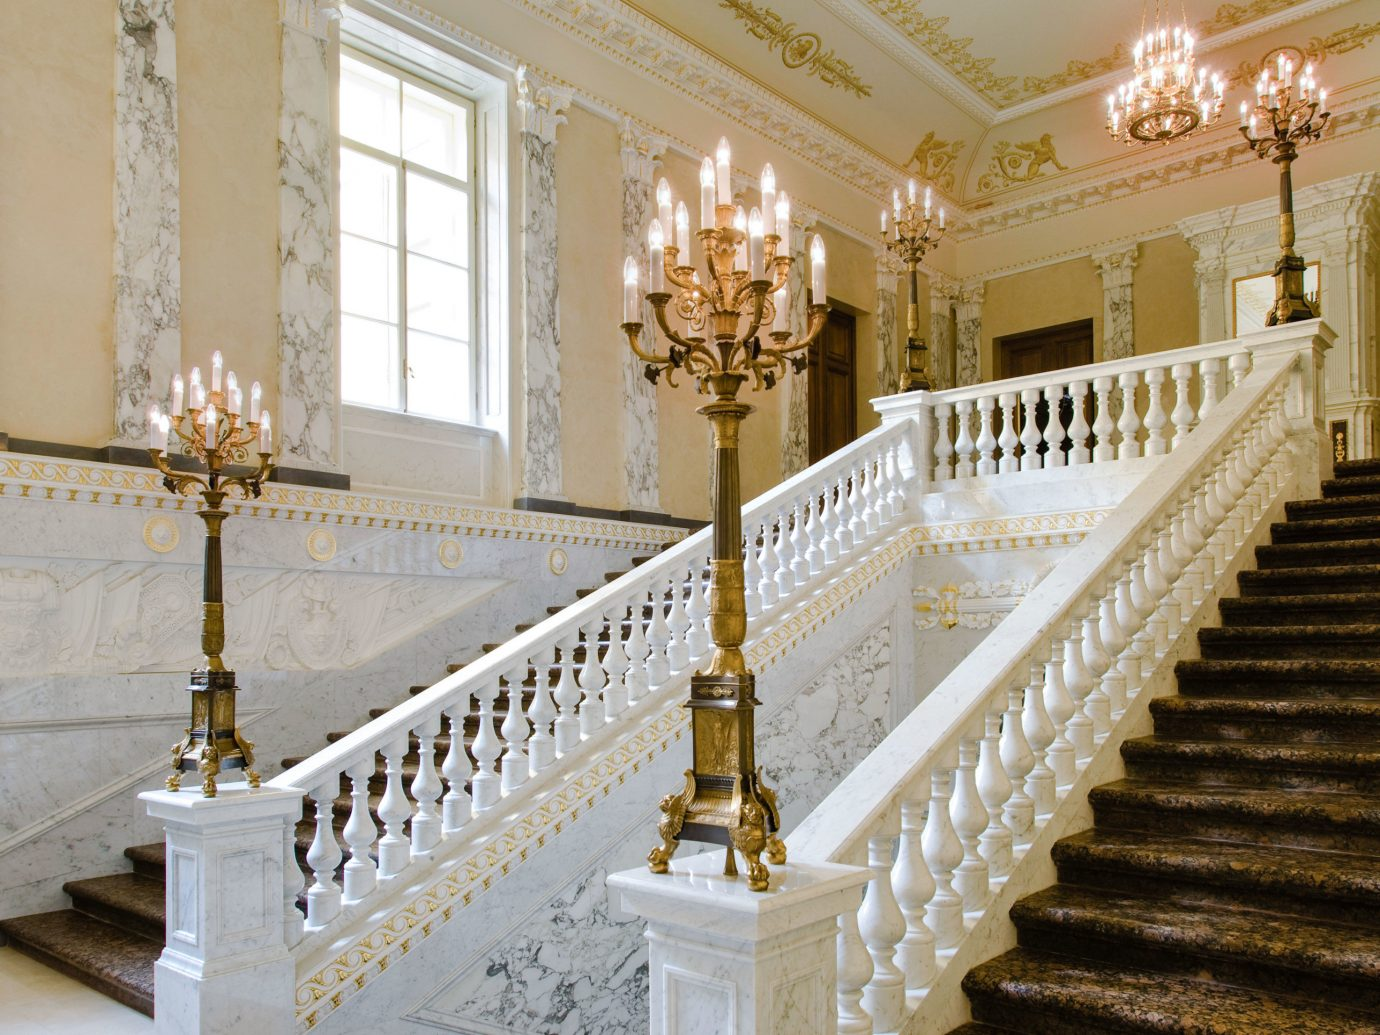 Hotels Luxury Travel baluster indoor stairs estate handrail home interior design tourist attraction aisle column molding house ceiling Lobby hall flooring window altar